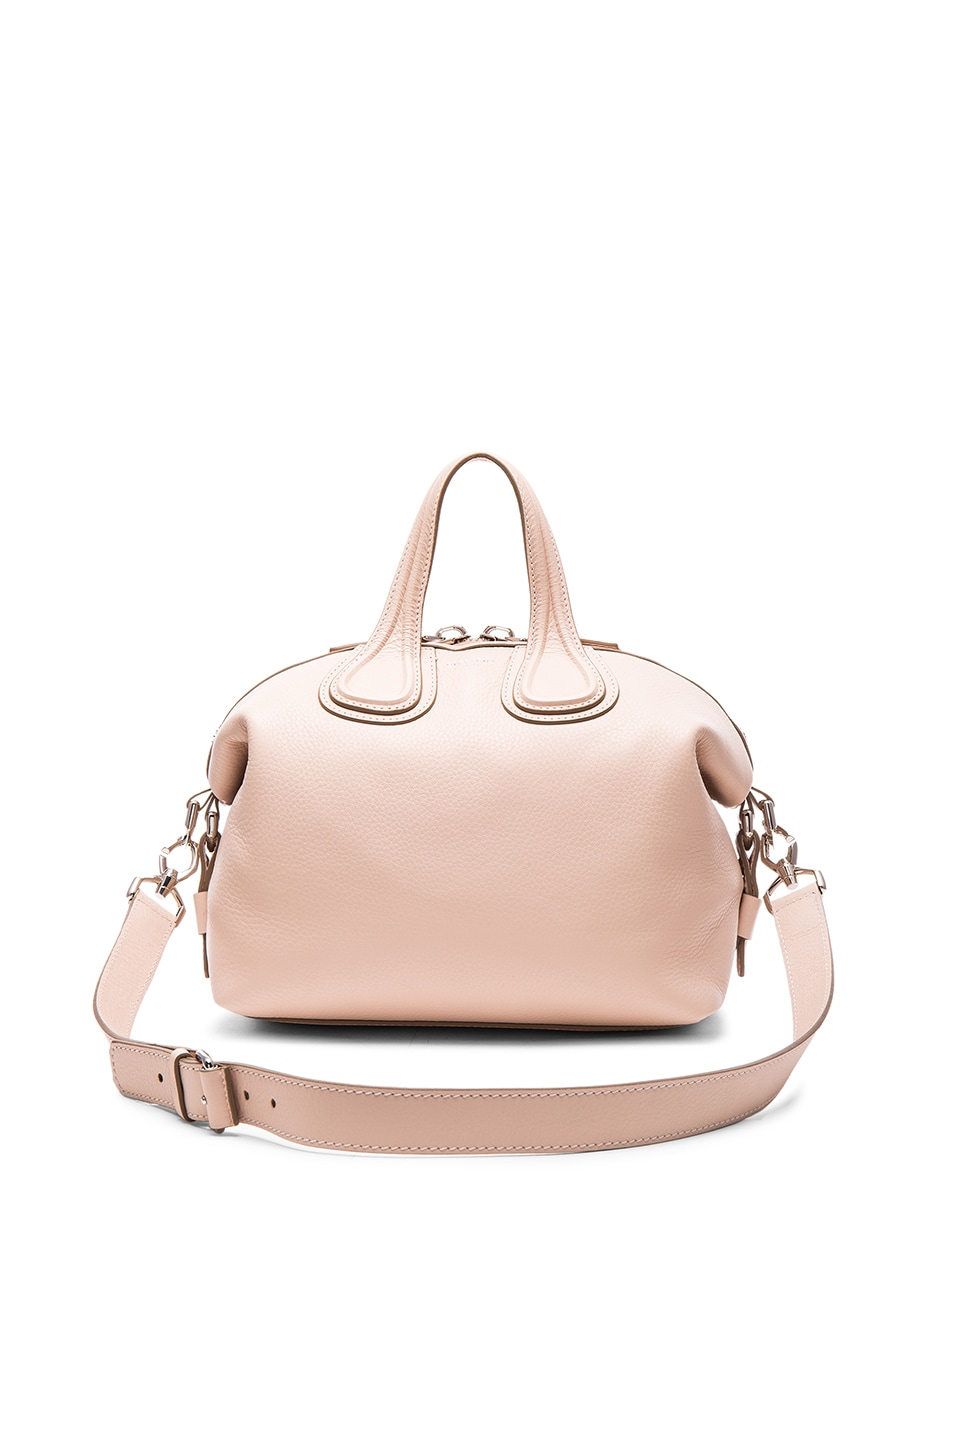 Image 1 of Givenchy Small Nightingale in Nude Pink